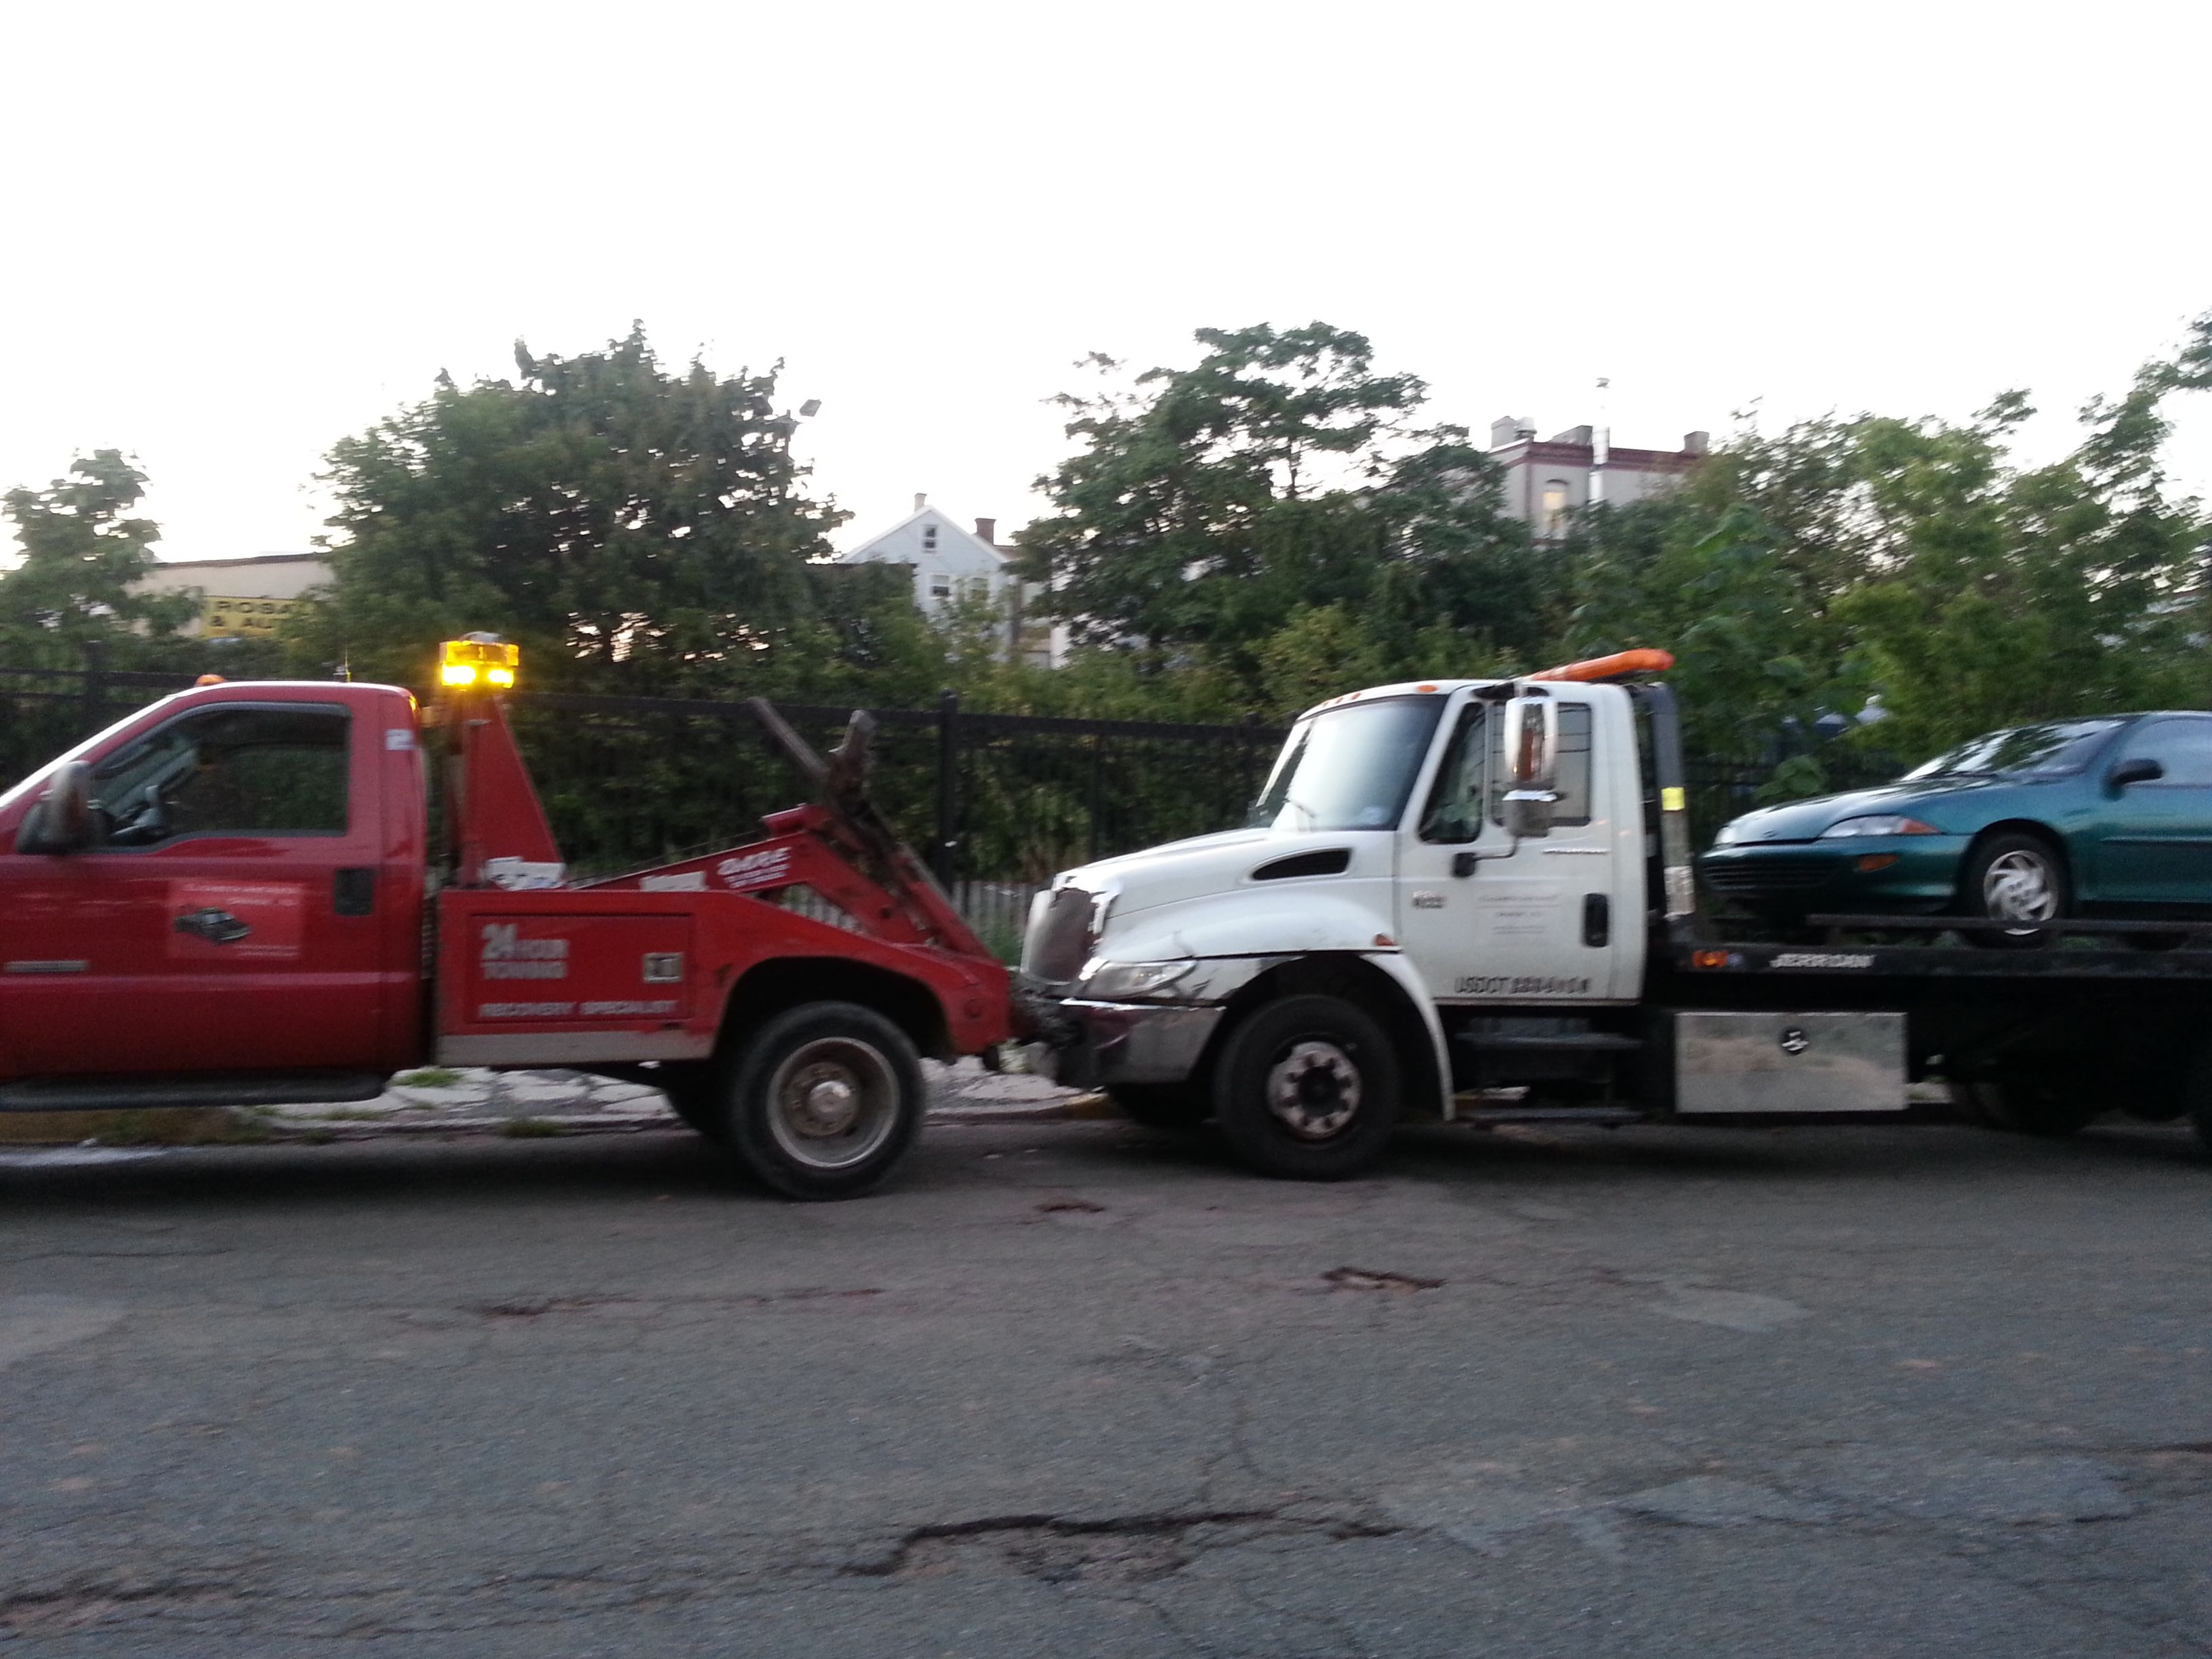 Pin of out tow trucks towing a junk car away. | Junk Car Removal NJ ...